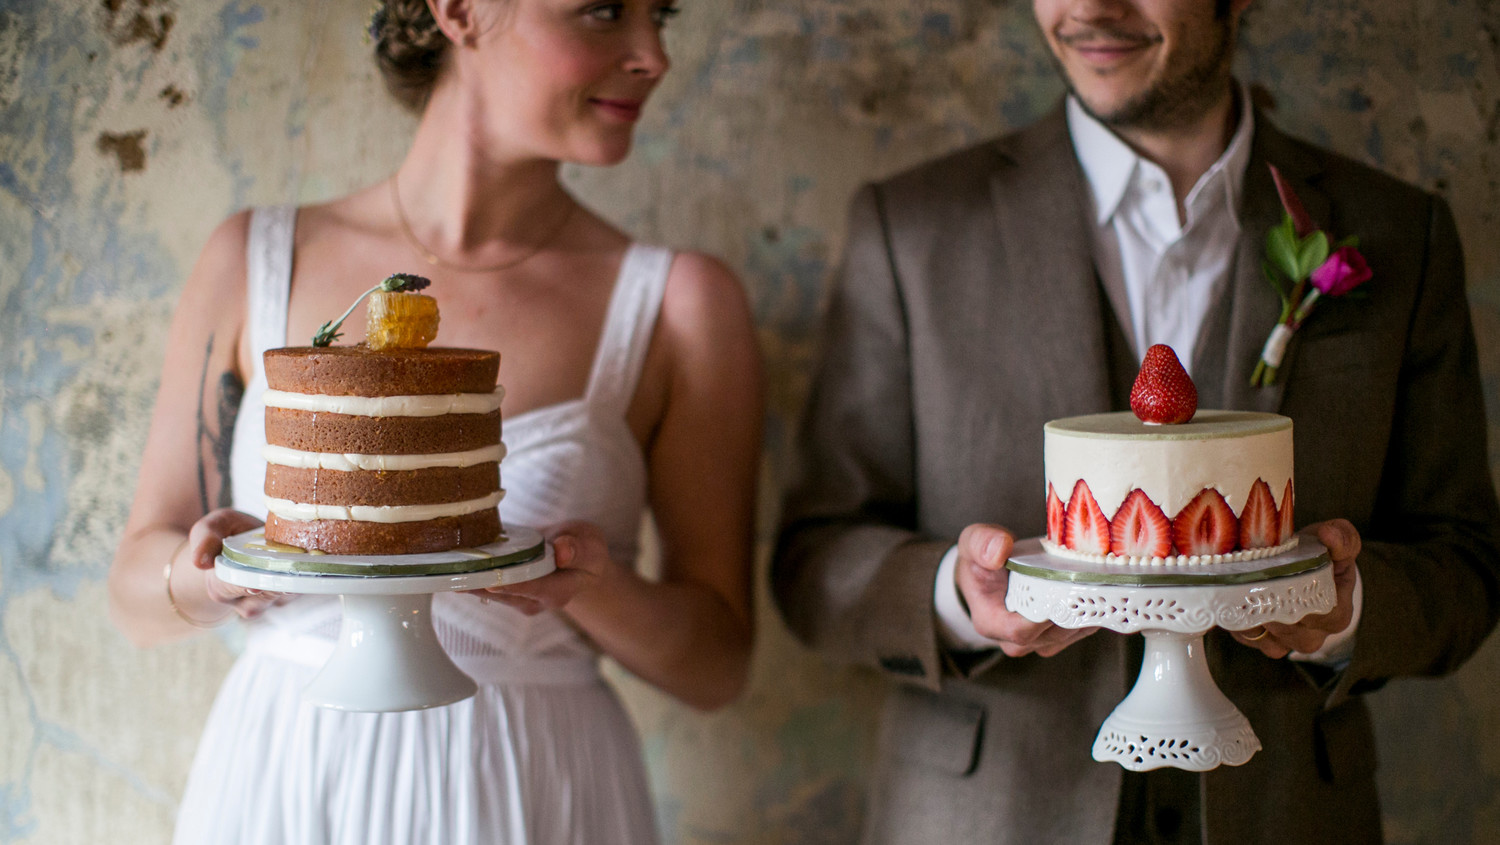 8 Wedding Cake Flavors You Haven't Tried Yet